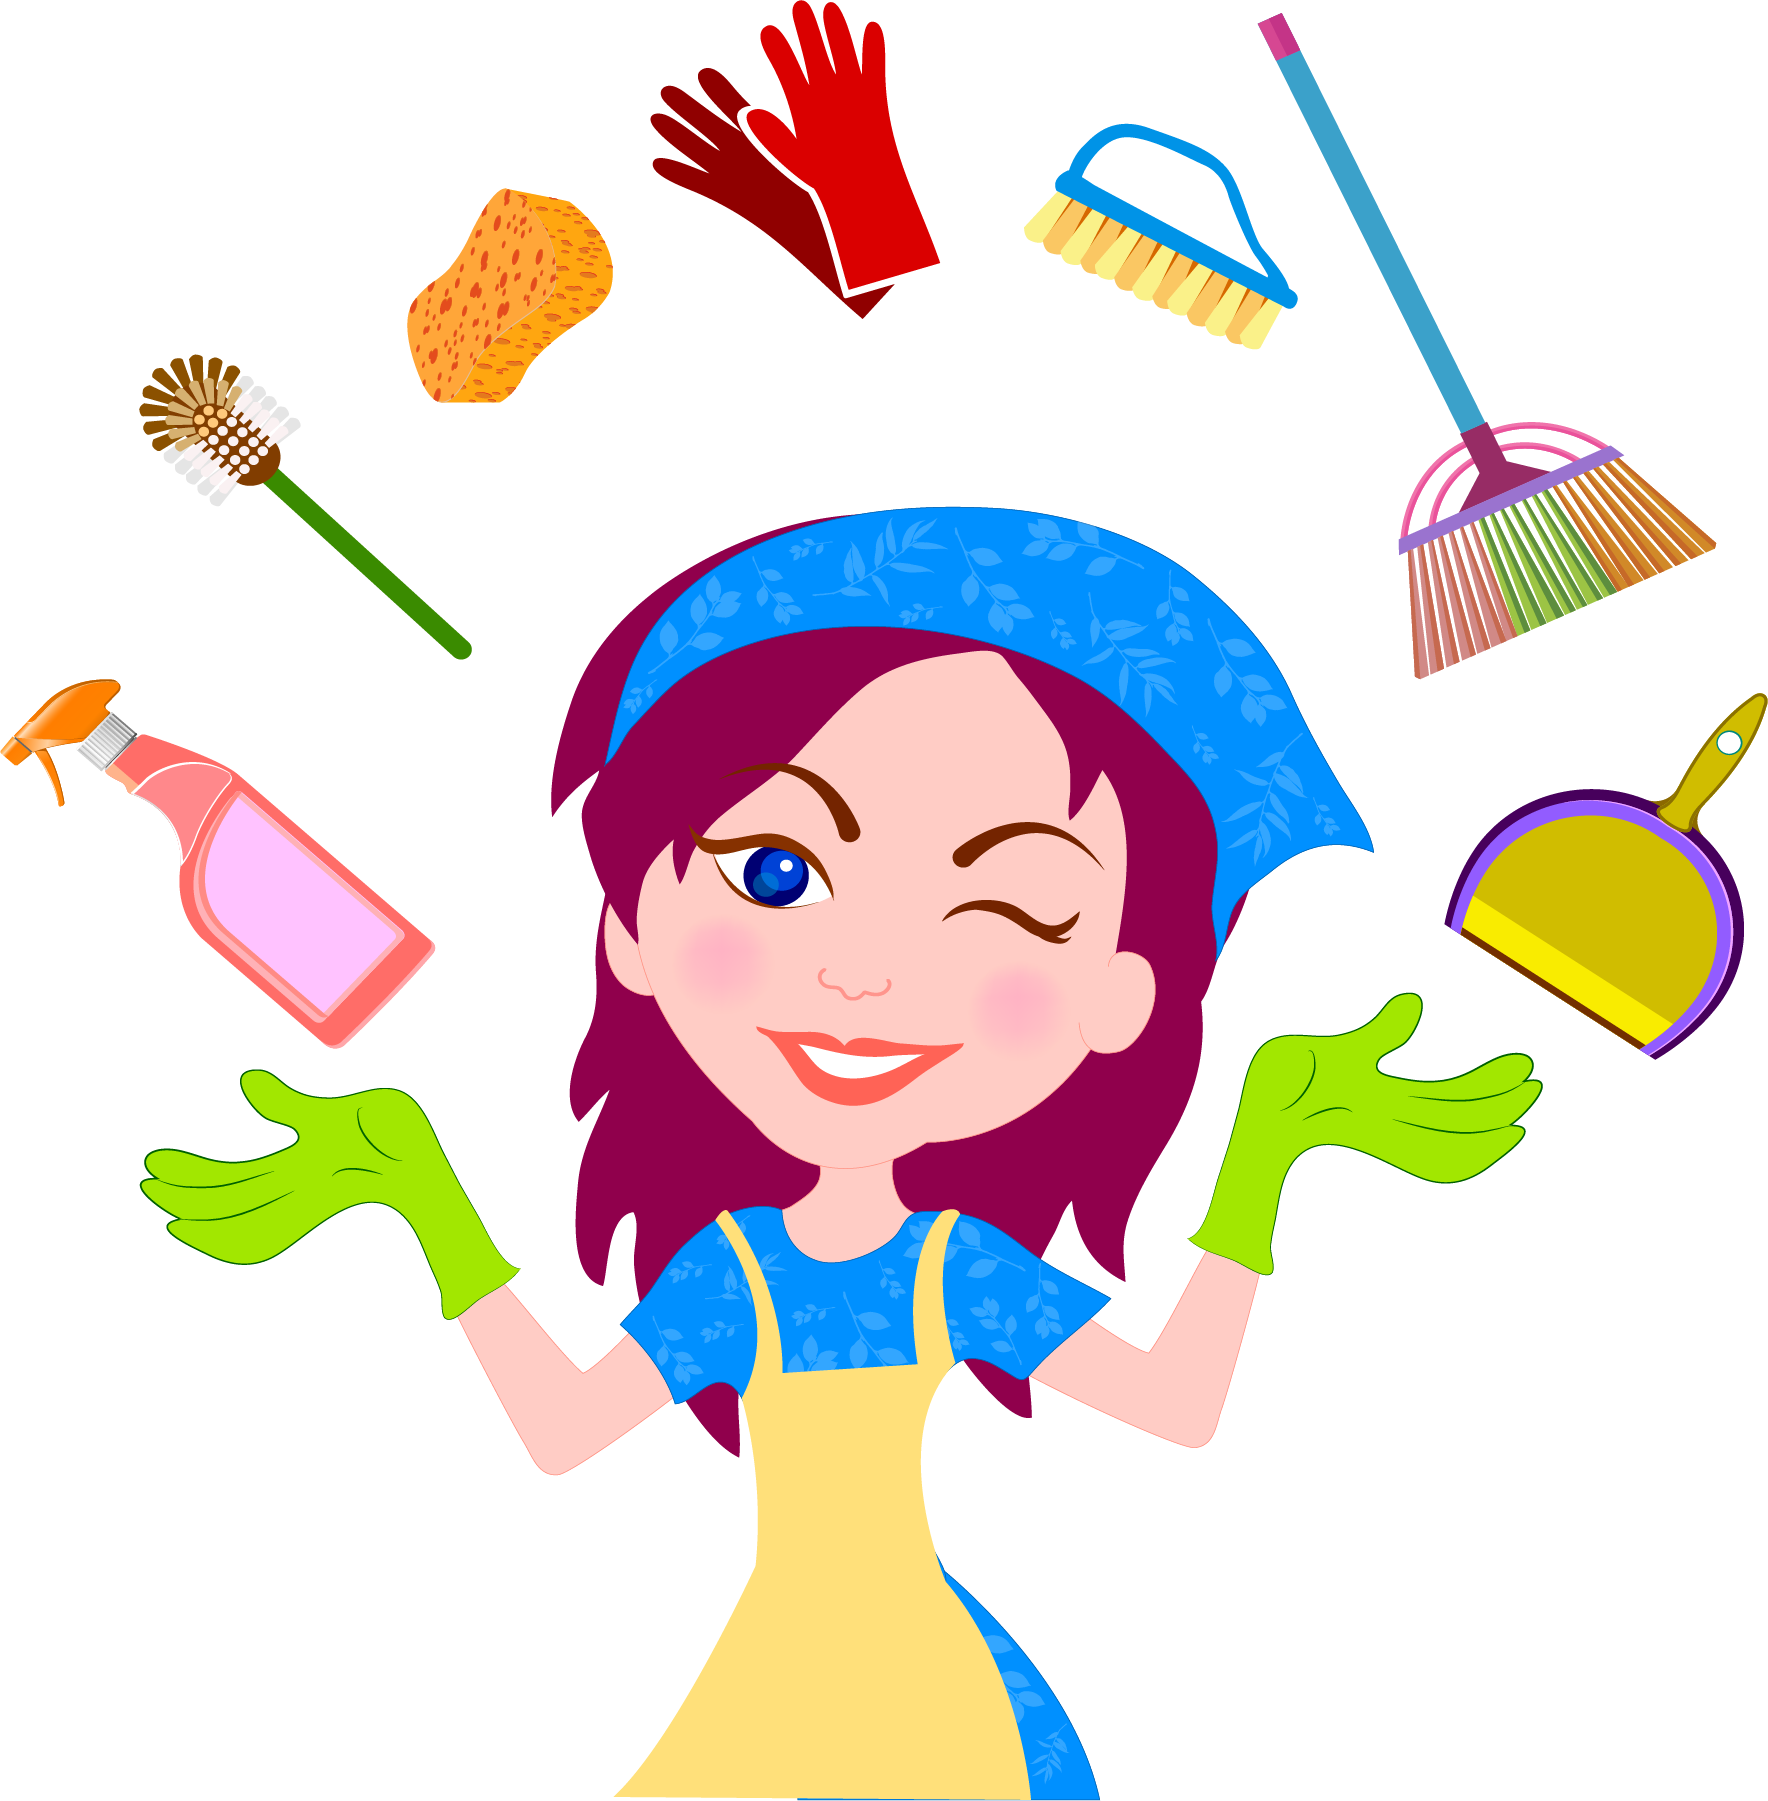 banner royalty free stock Cleaner clipart housekeeper. Download housekeeping service house.